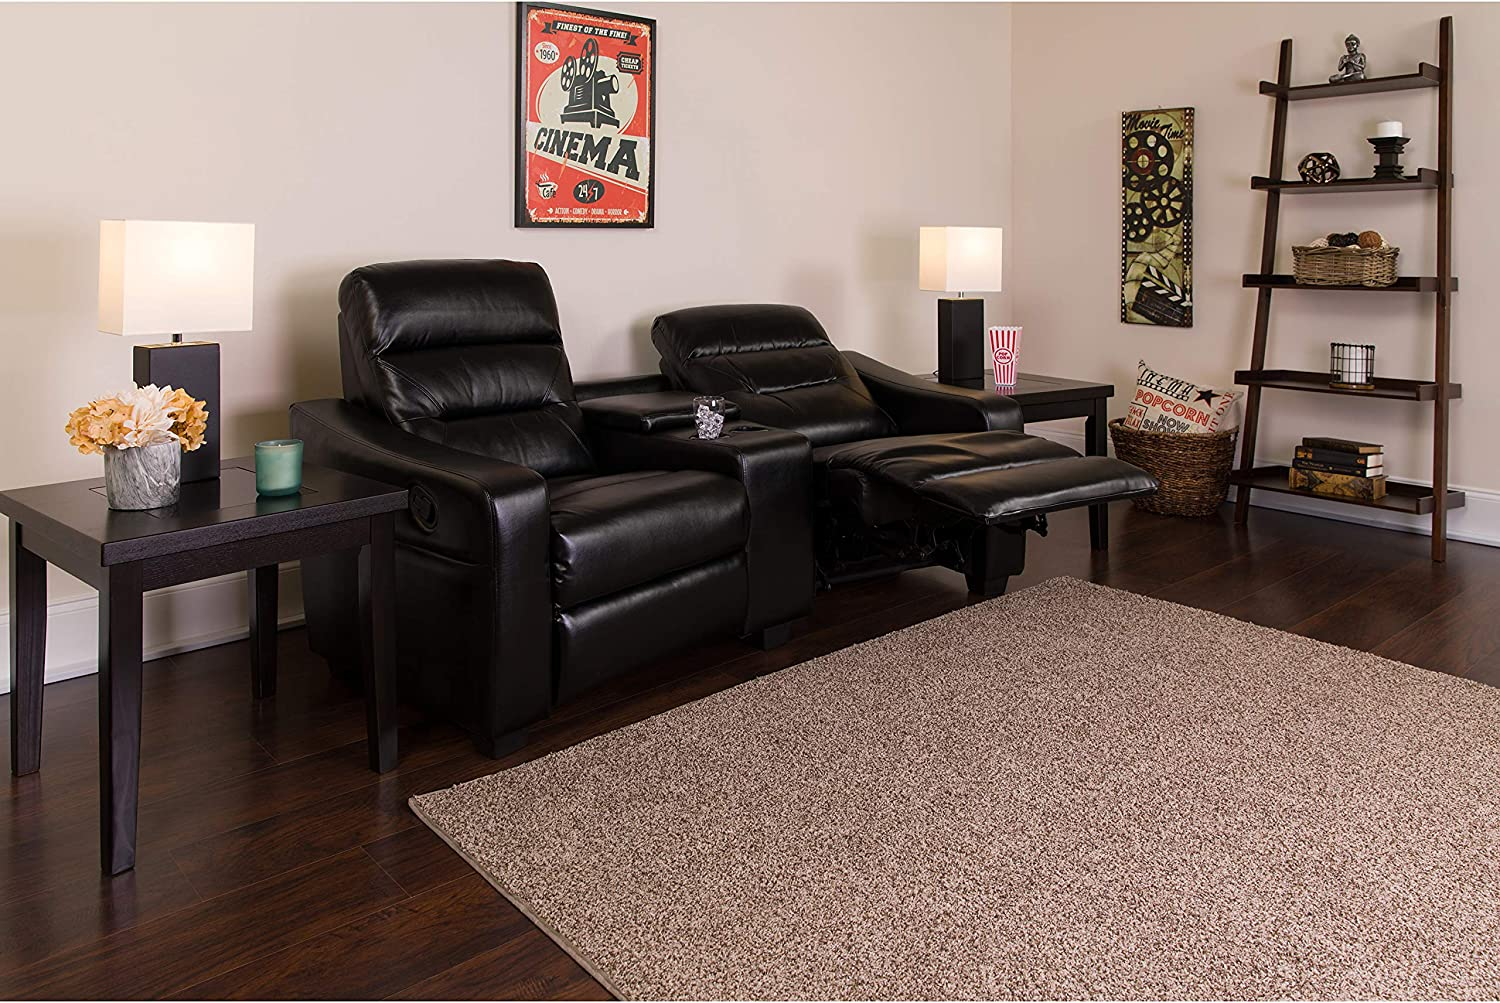 Flash Furniture Futura Series 2-Seat Reclining Black LeatherSoft Theater Seating Unit with Cup Holders: Furniture & Decor